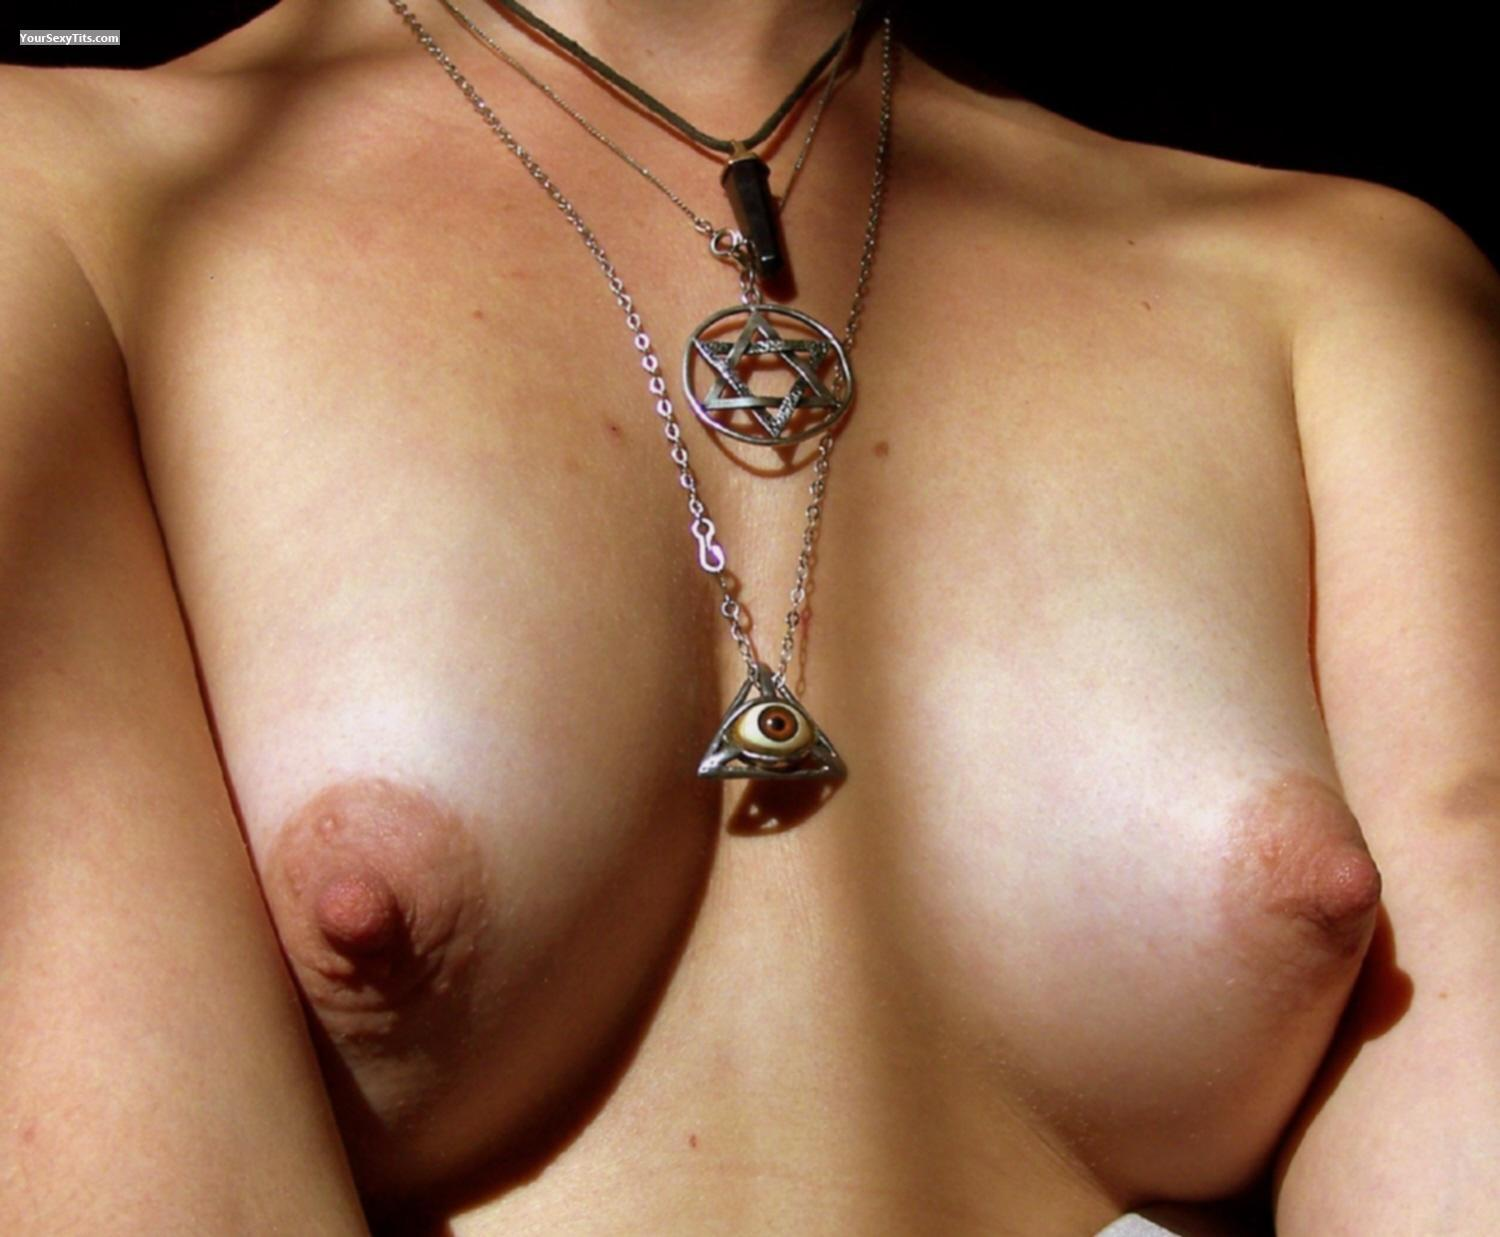 Tit Flash: Small Tits - Angel 81 from South Africa